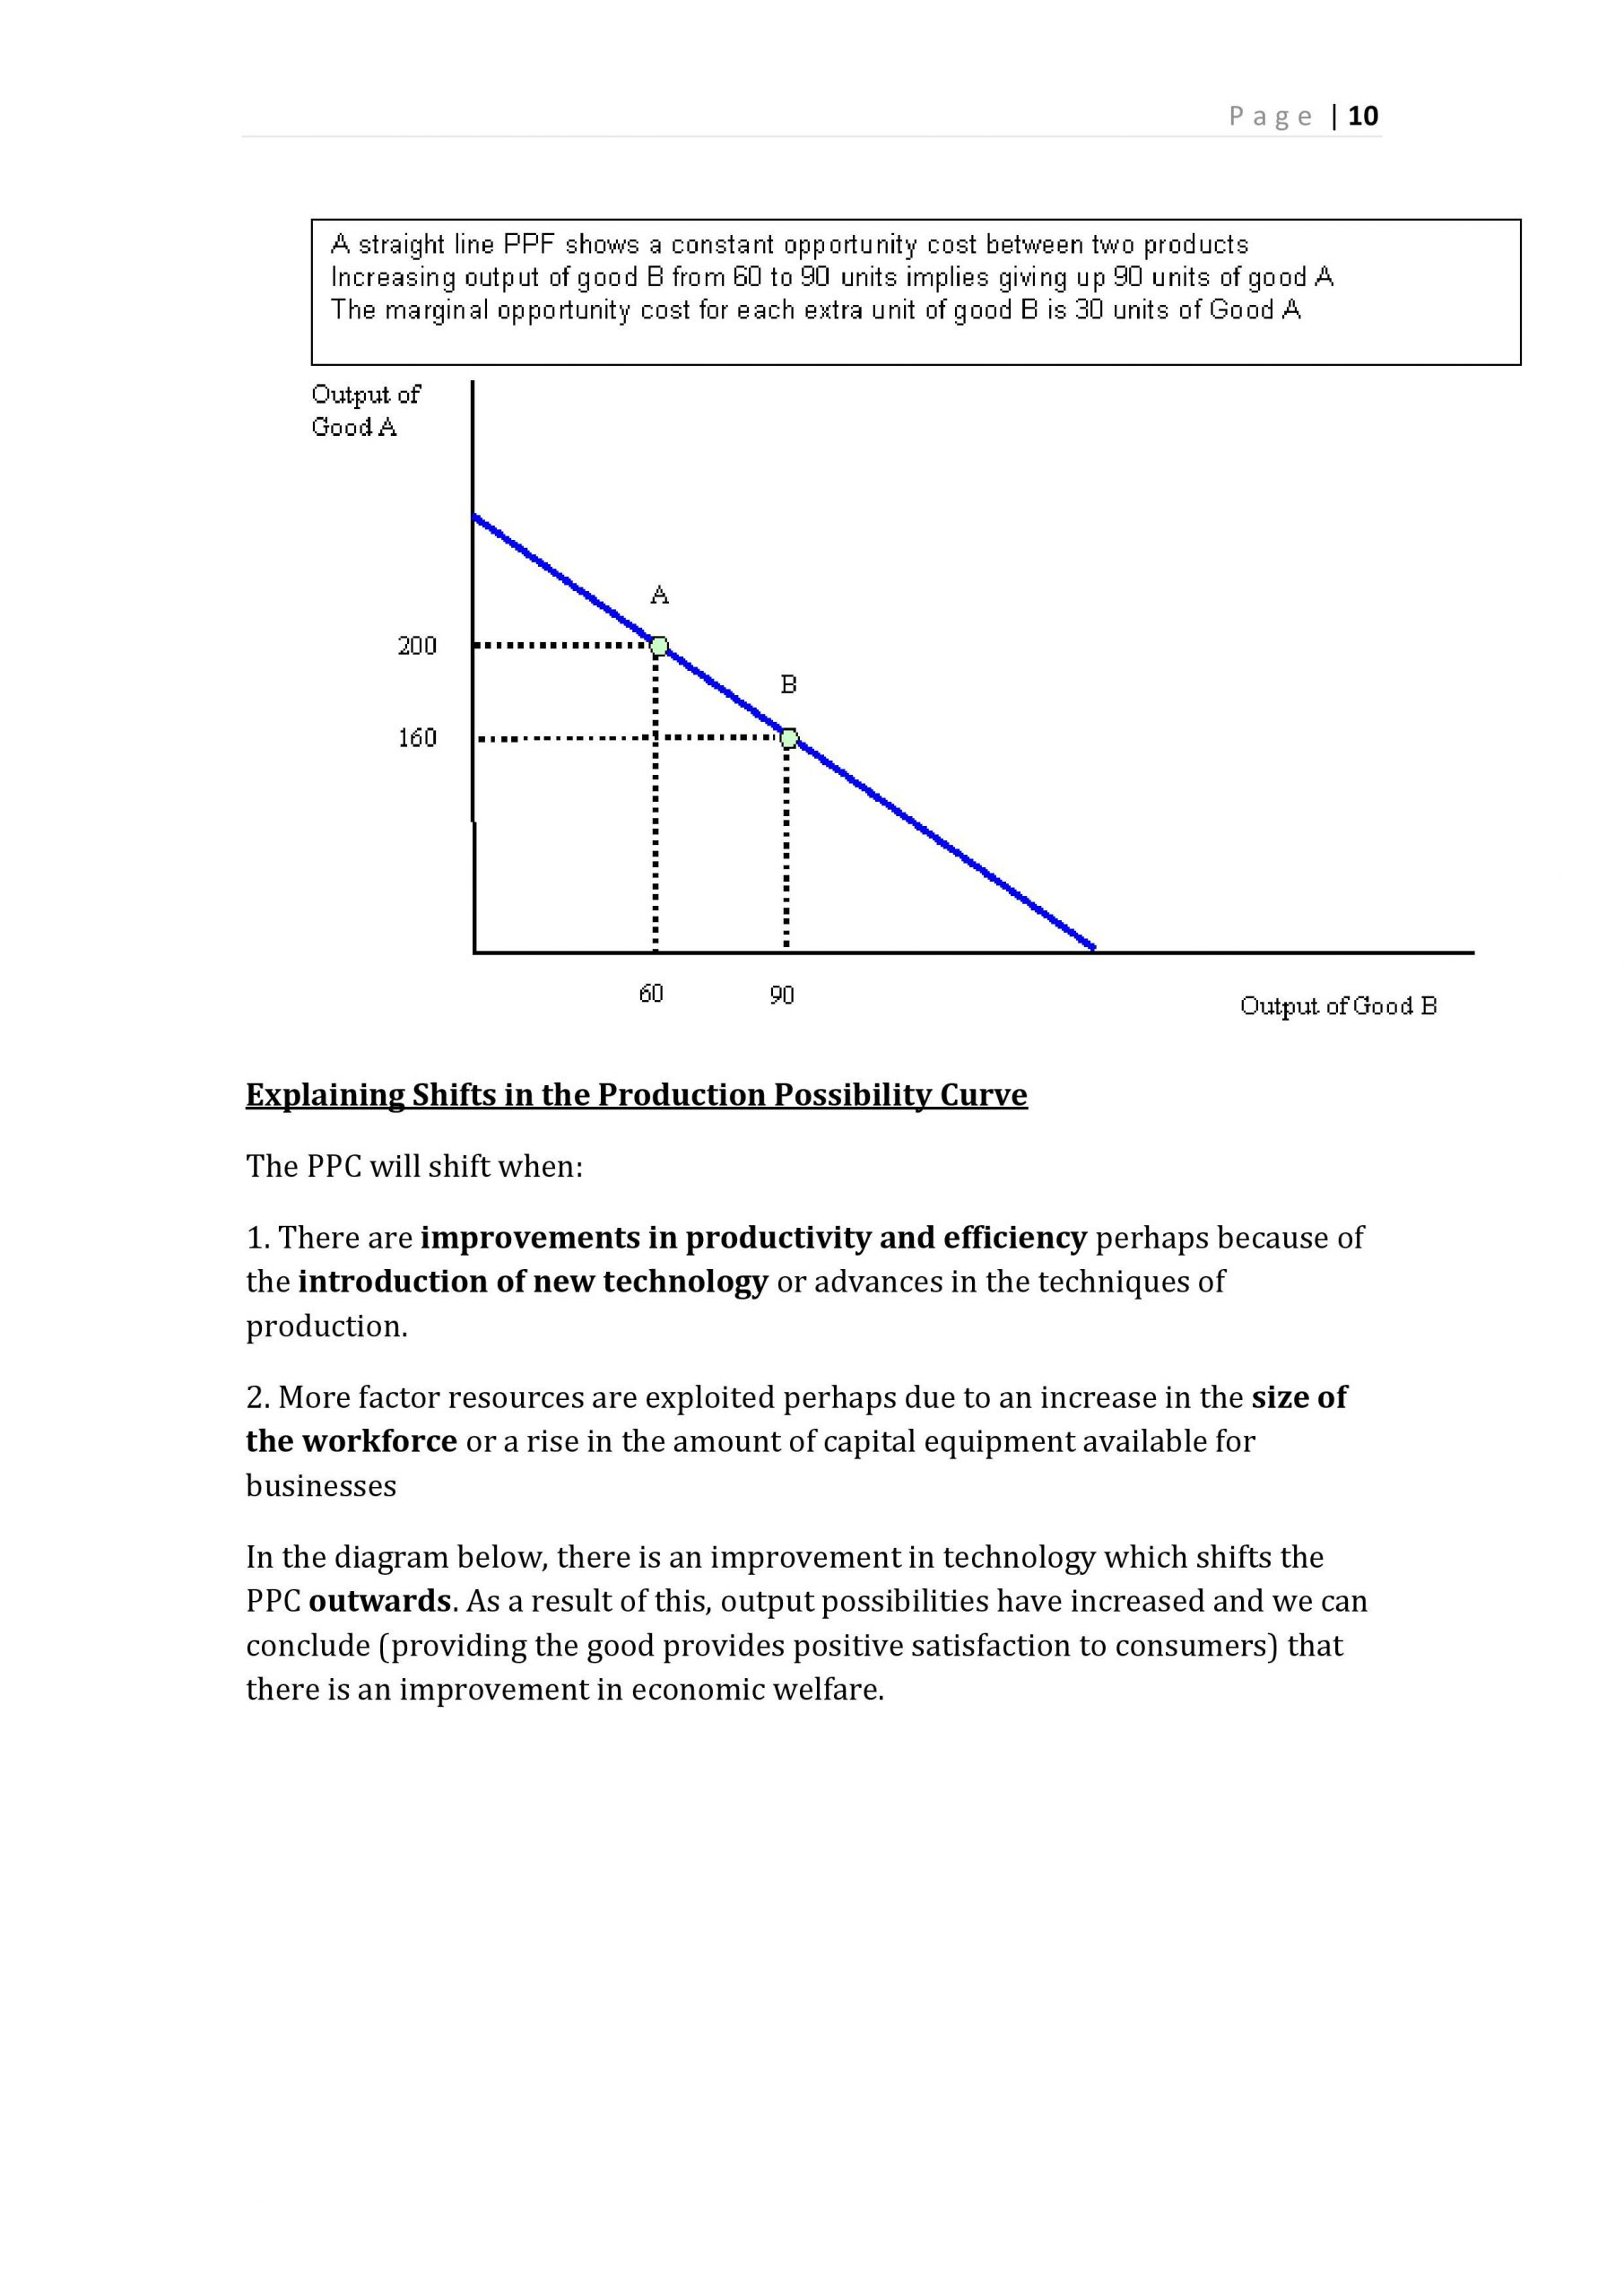 31 Production Possibilities Curve Worksheet Answers